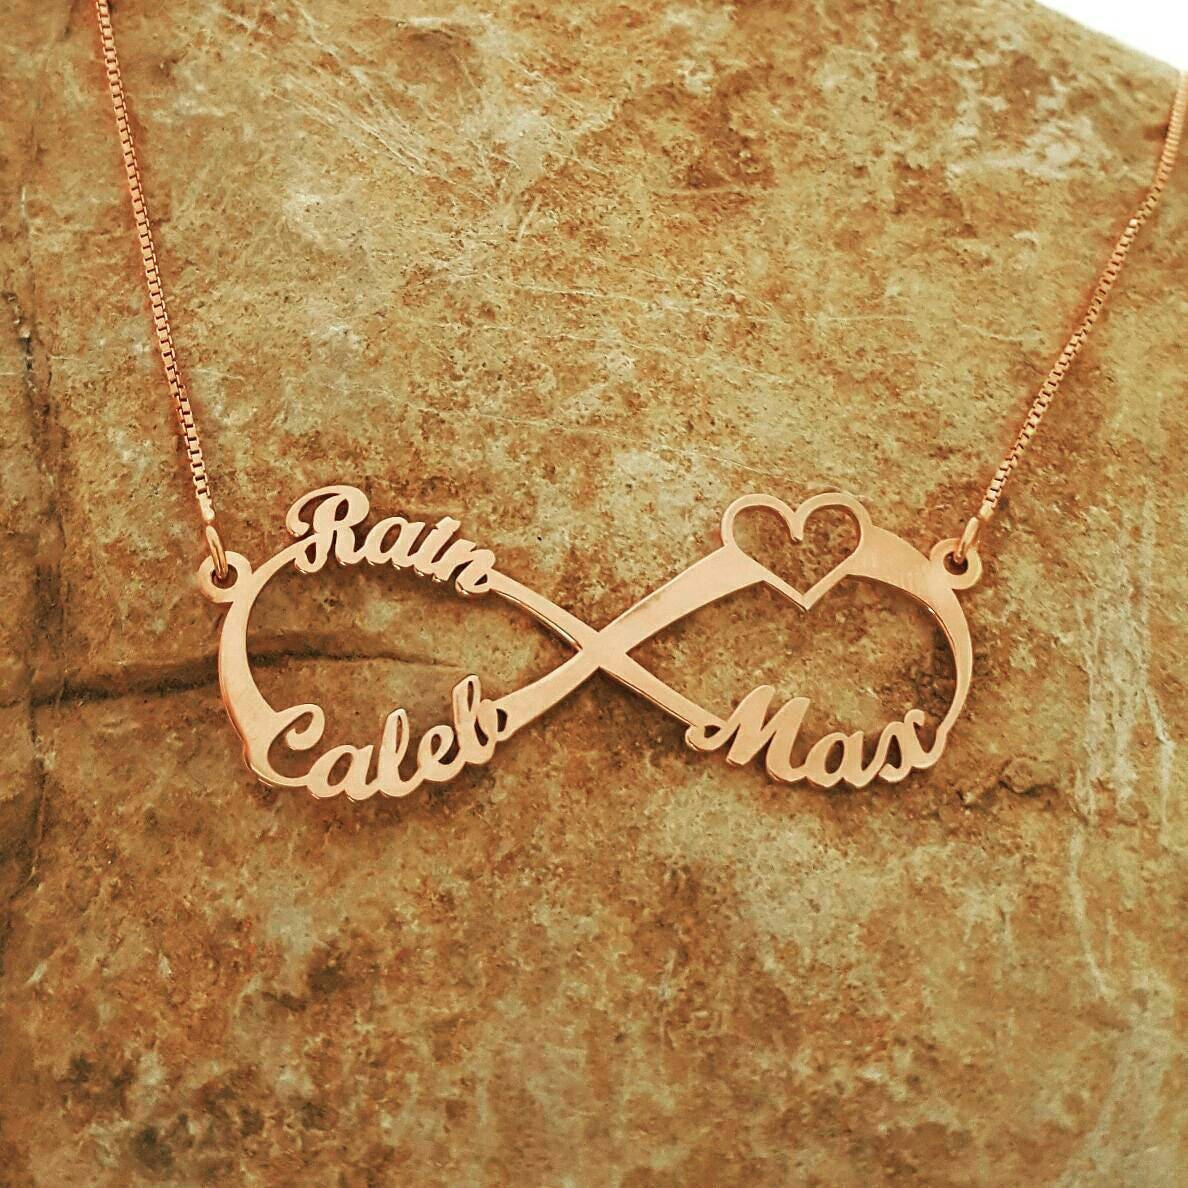 d372124fc2efa 3 Name Rose Gold Infinity Necklace Singh for Infinity Forever Symbol  nameplate Rose Gold Infinity Style Necklace For Mother Day Gift Sale!